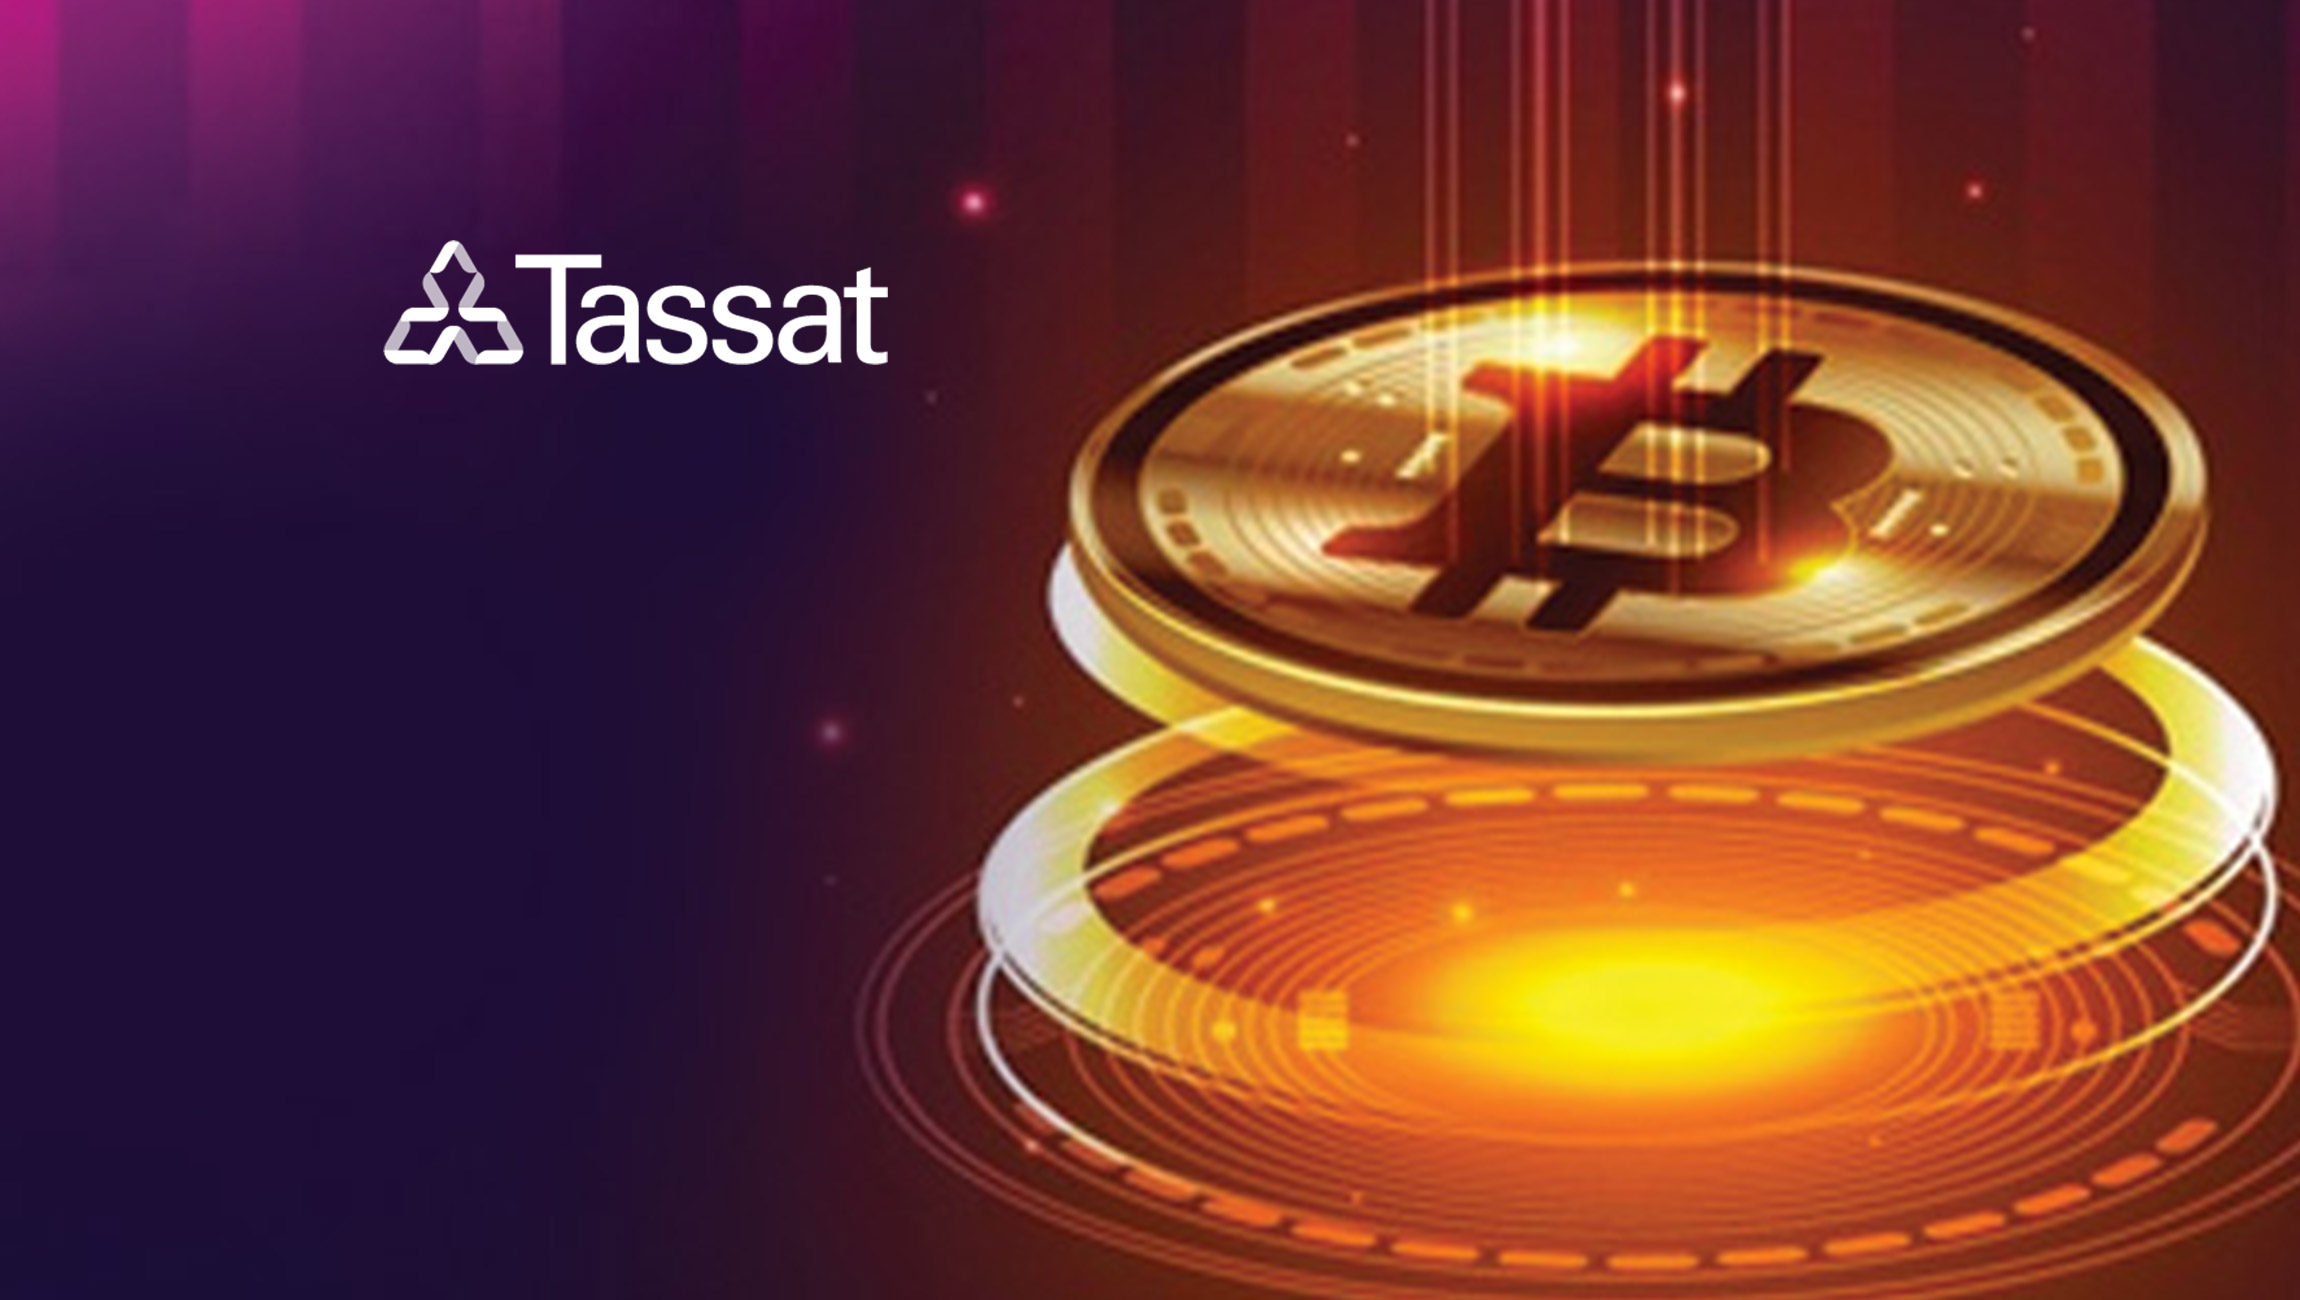 Tassat Appoints Senior Financial Services Operating Executive Krishna Prasad as CEO